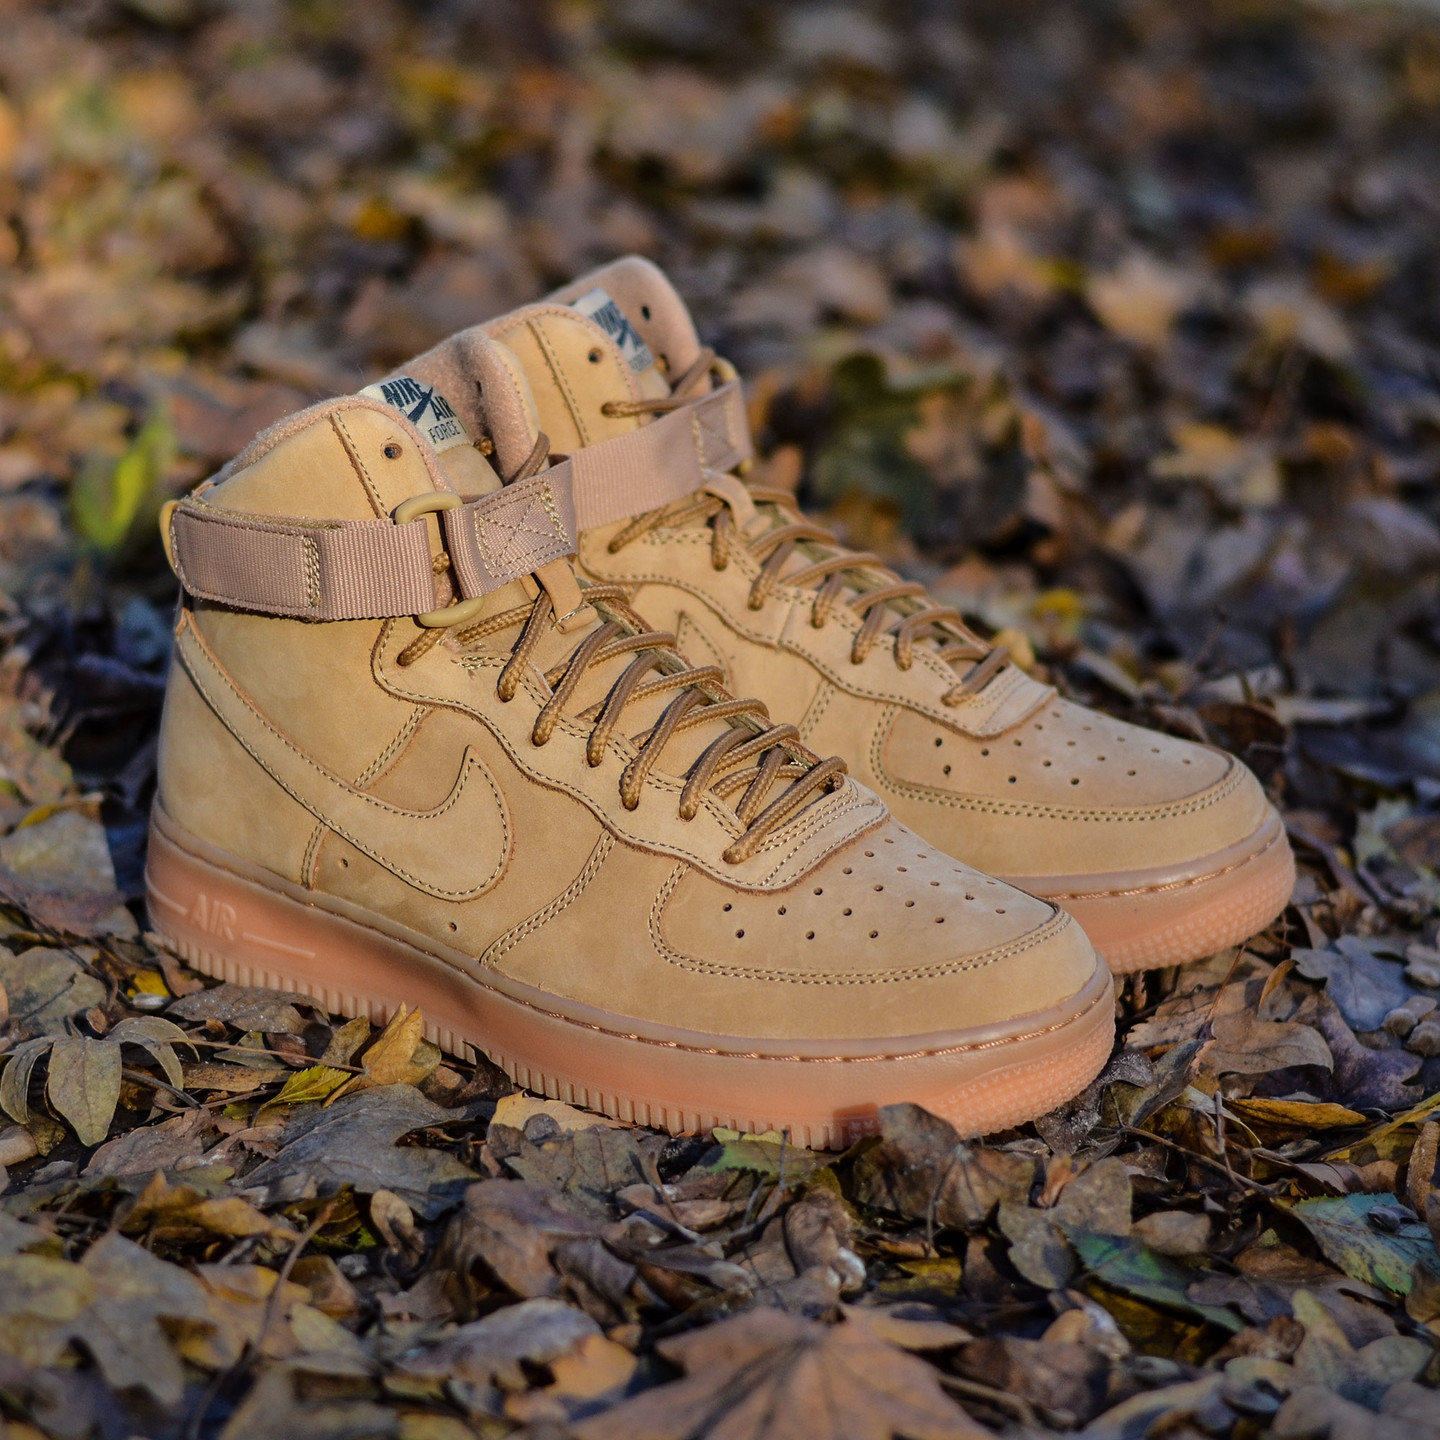 Nike Air Force 1 High GS 'Flax' Flax / Outdoor Green 807617-200